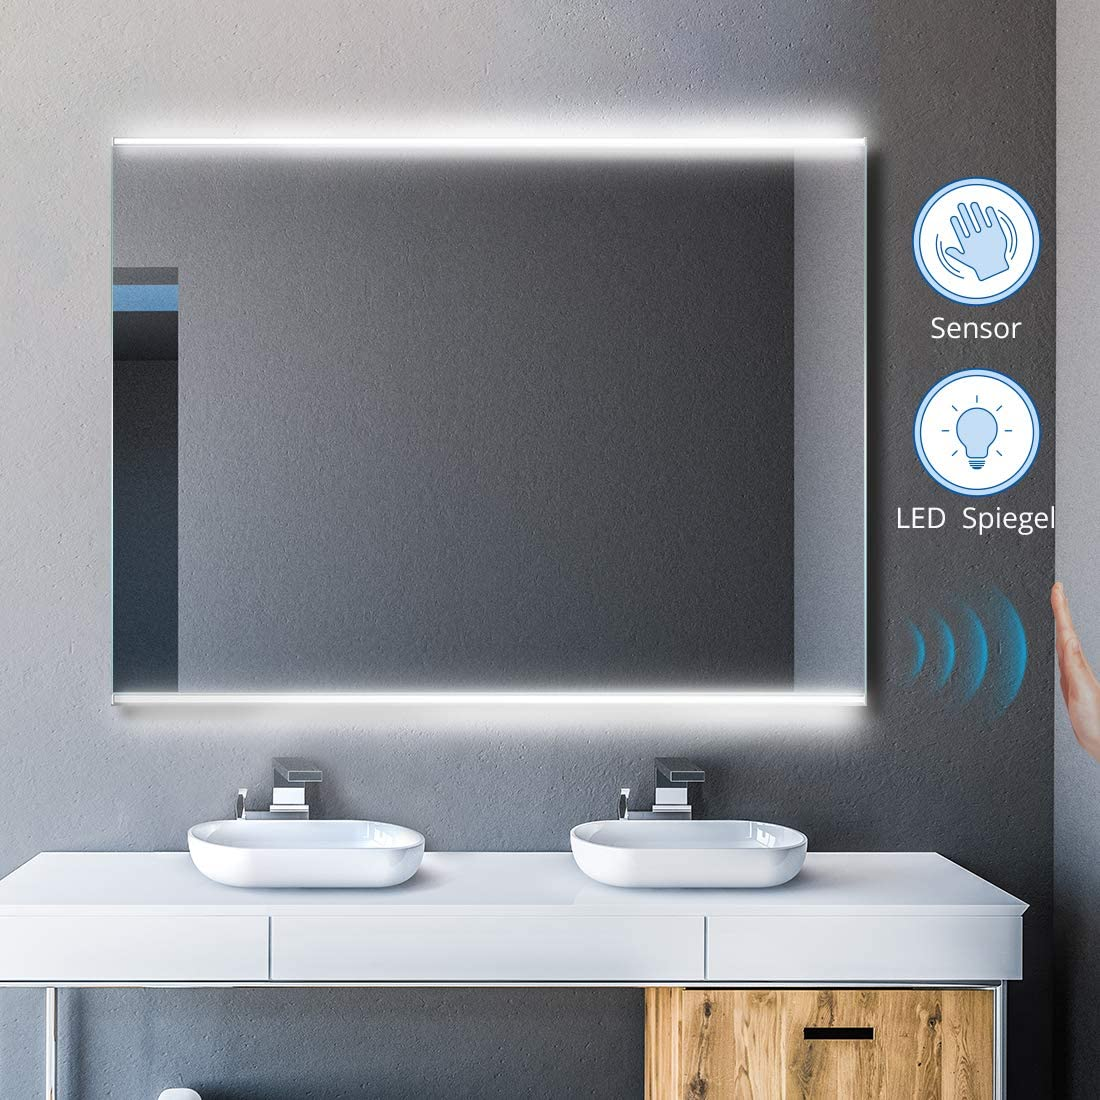 Amazon Com Cozy Castle Led Bathroom Mirrors With Infrared Sensor Backlit Bathroom Mirror With Lights Lighted Wall Mounted Mirror 36 X 28 Sensor Switch Frameless Horizontal Vertical Daylight Kitchen Dining